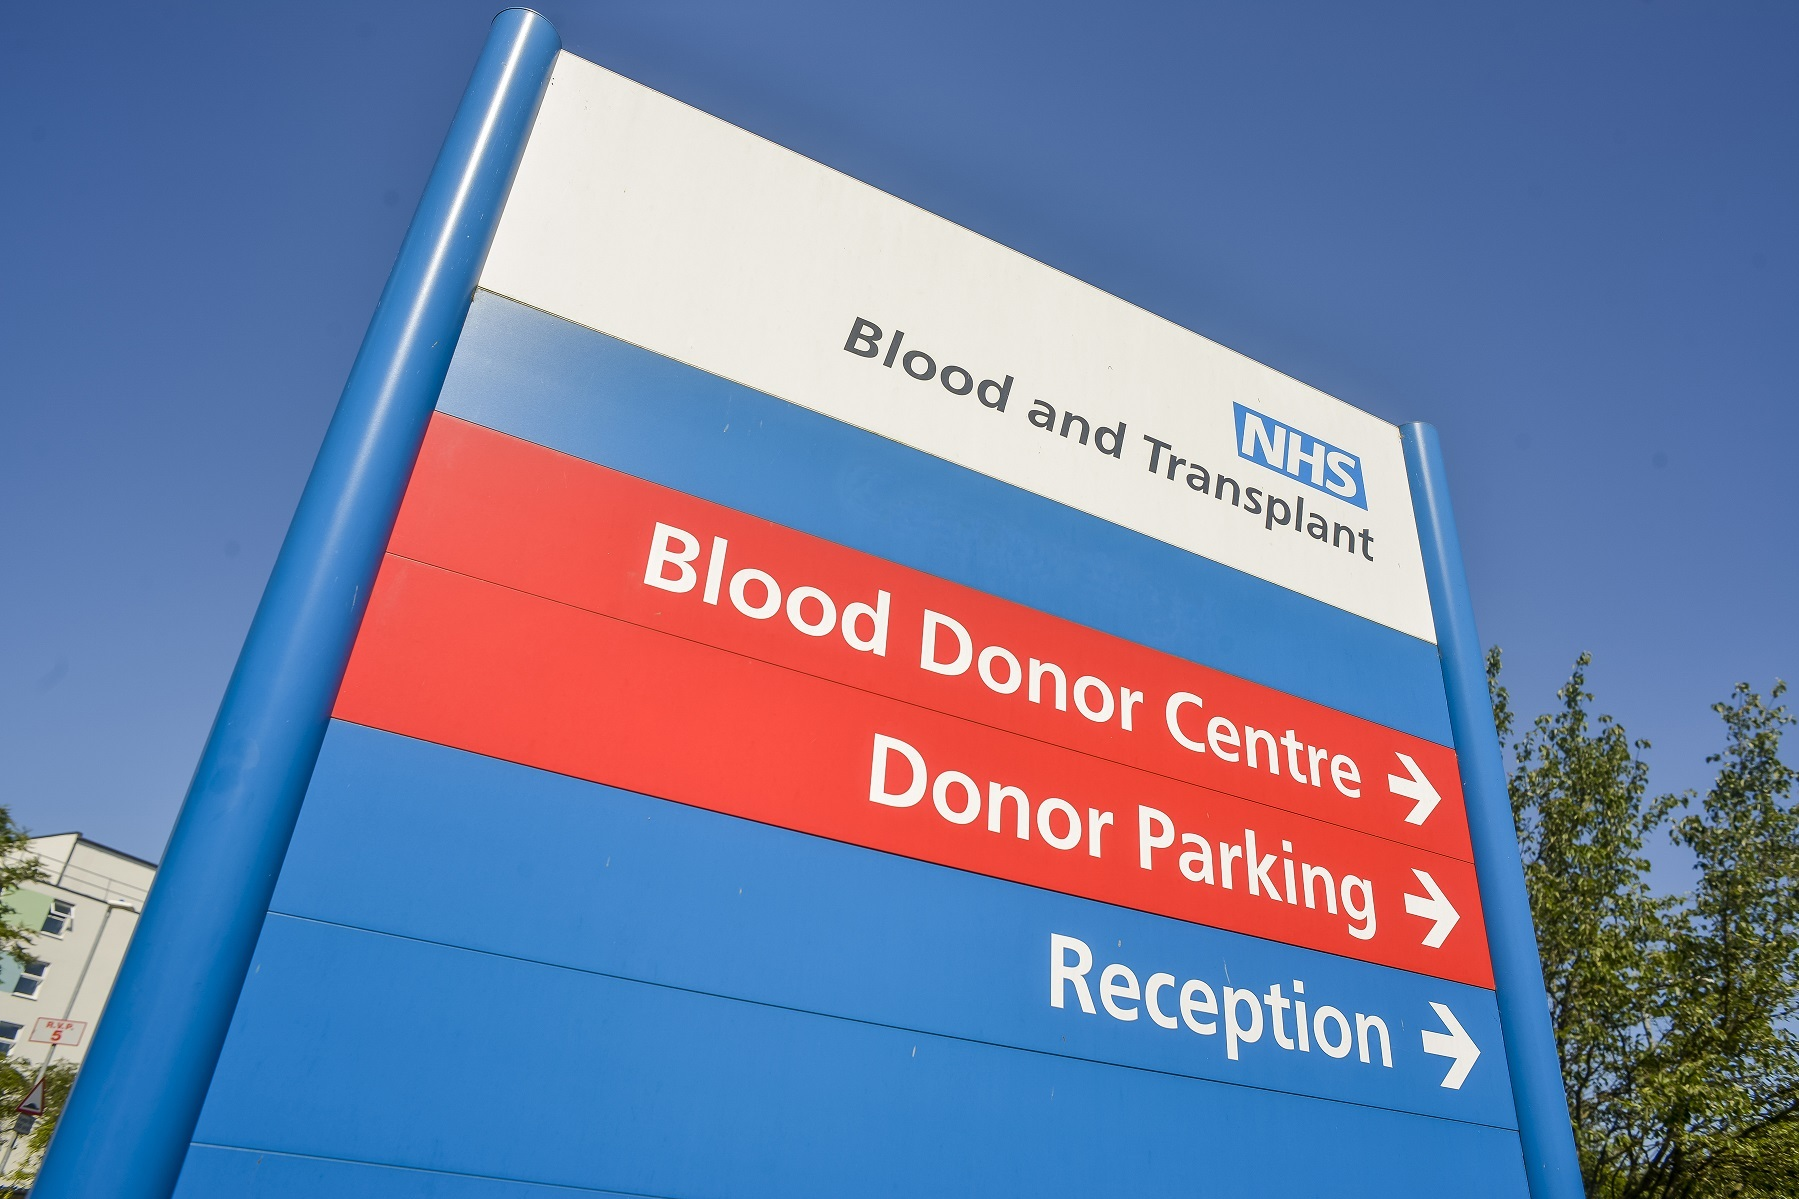 NHS Blood and Transplant is calling for more county residents to register this year